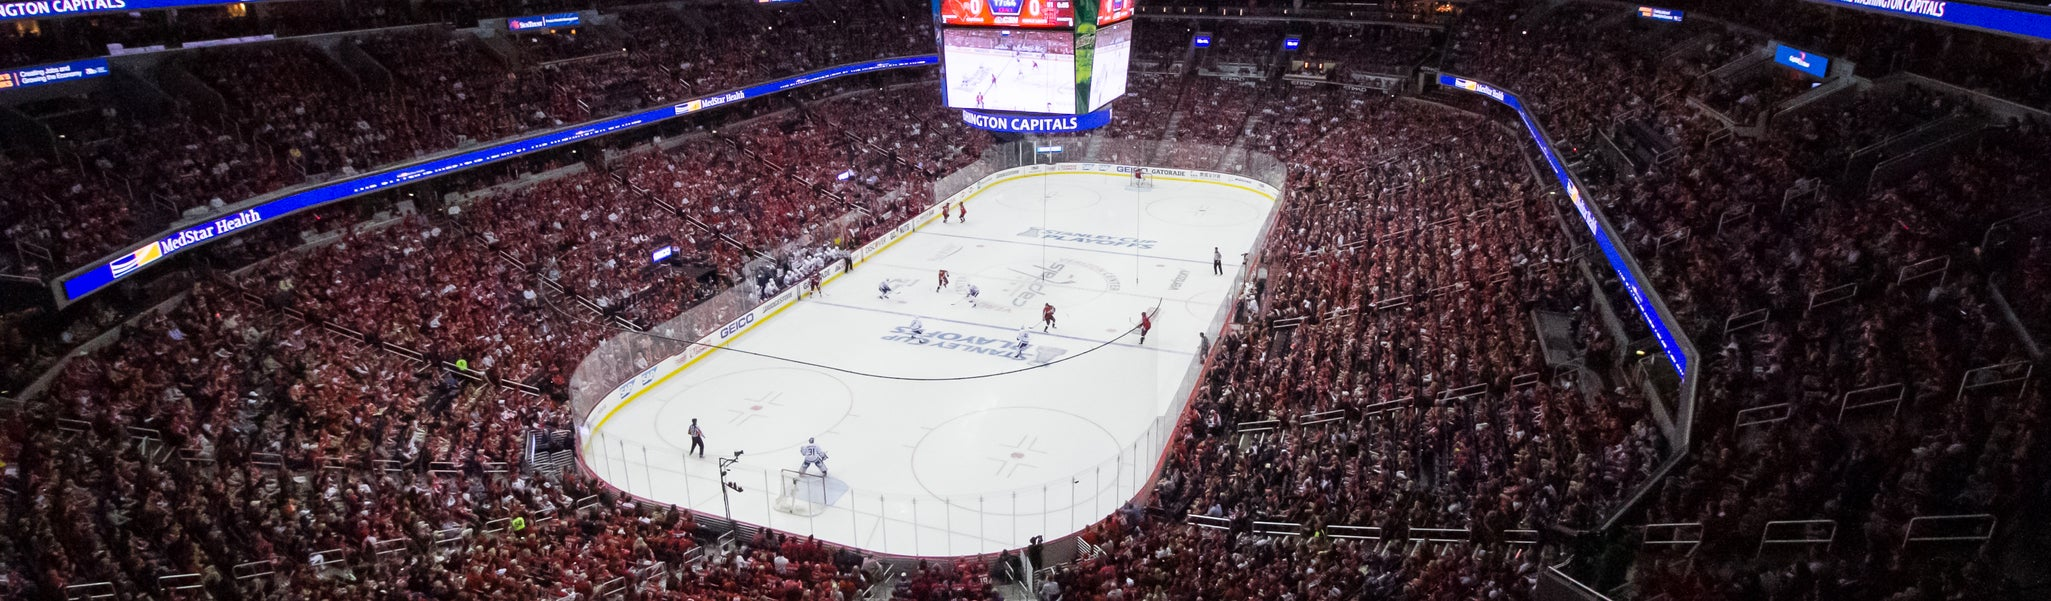 Seat view from Mezzanine End 411 at Capital One Arena